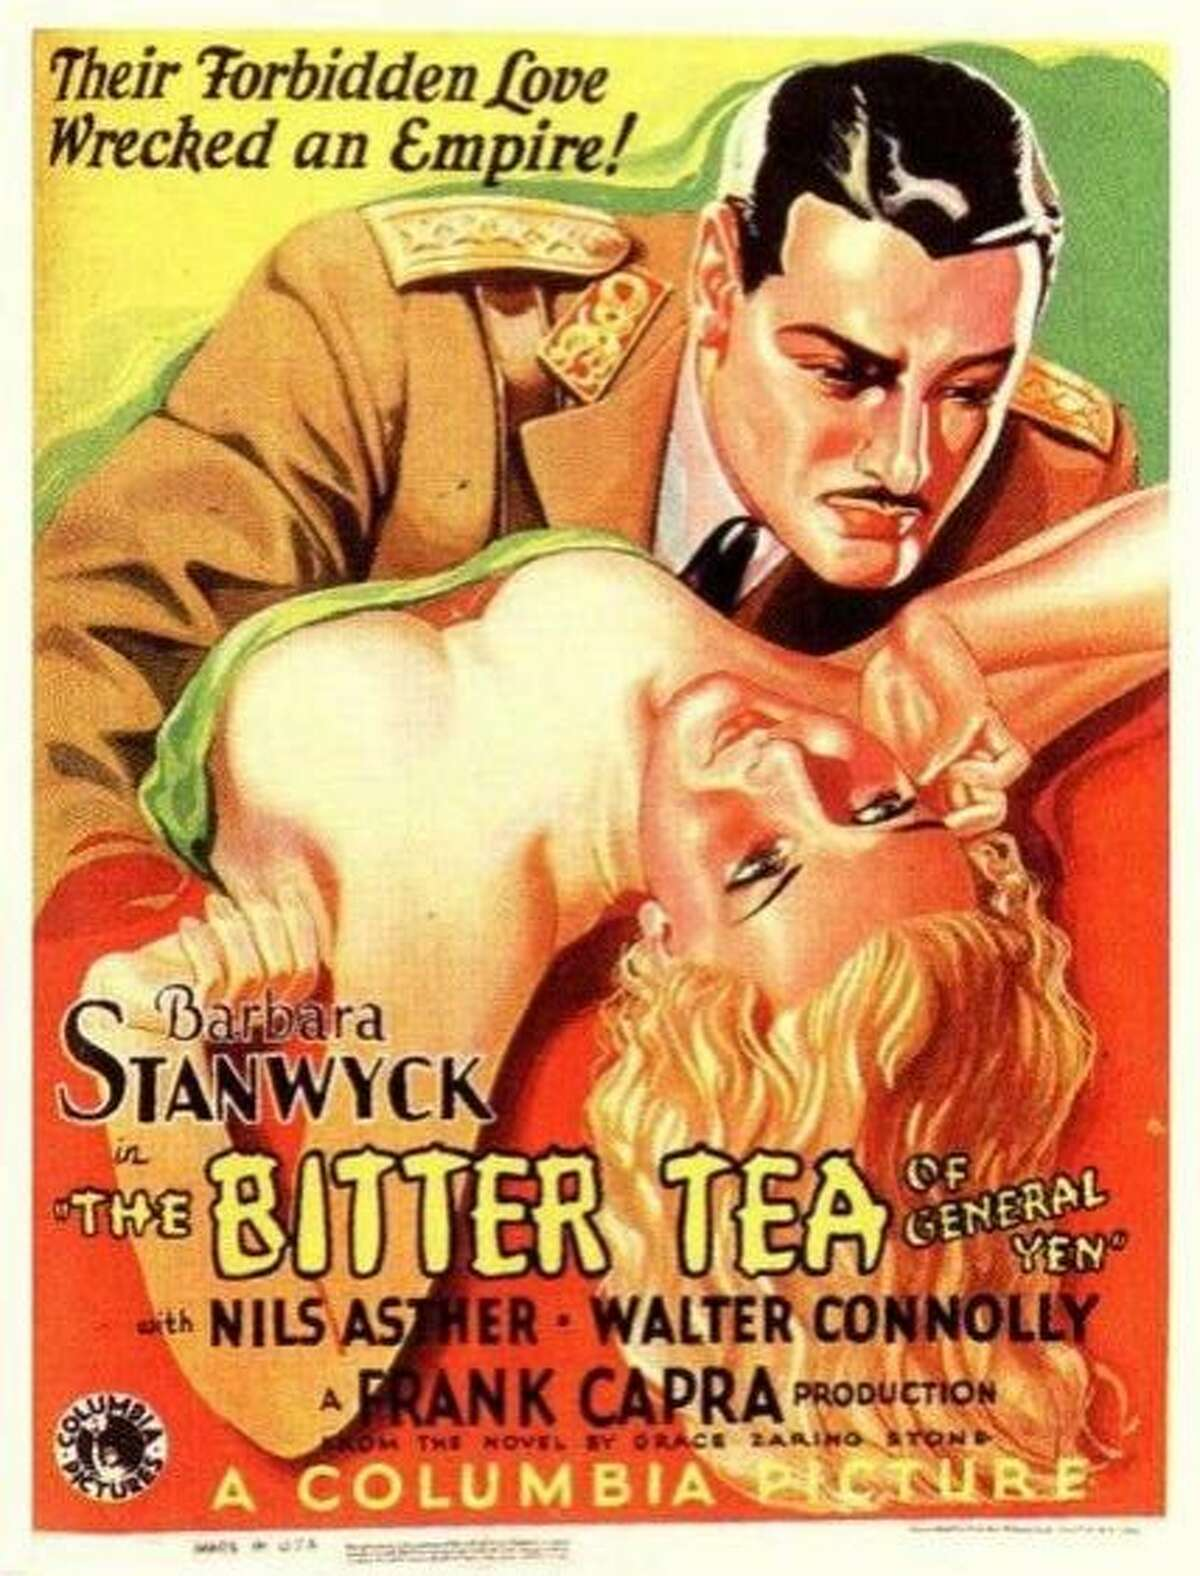 """""""The Bitter Tea of General Yen,"""" a Columbia Pictures film of 1933 starred Barbara Stanwyck as Megan Davis and Nils Asther as General Yen. It is one of about 100 films that film historian and Stamford resident Lou Sabini covers in his book, """"Sex in the Cinema: The �Pre-Code� Years (1929�1934)."""" It covers a time when movies were far more grittier, violent and lurid than what would become known as the """"Golden Age of Hollywood."""""""